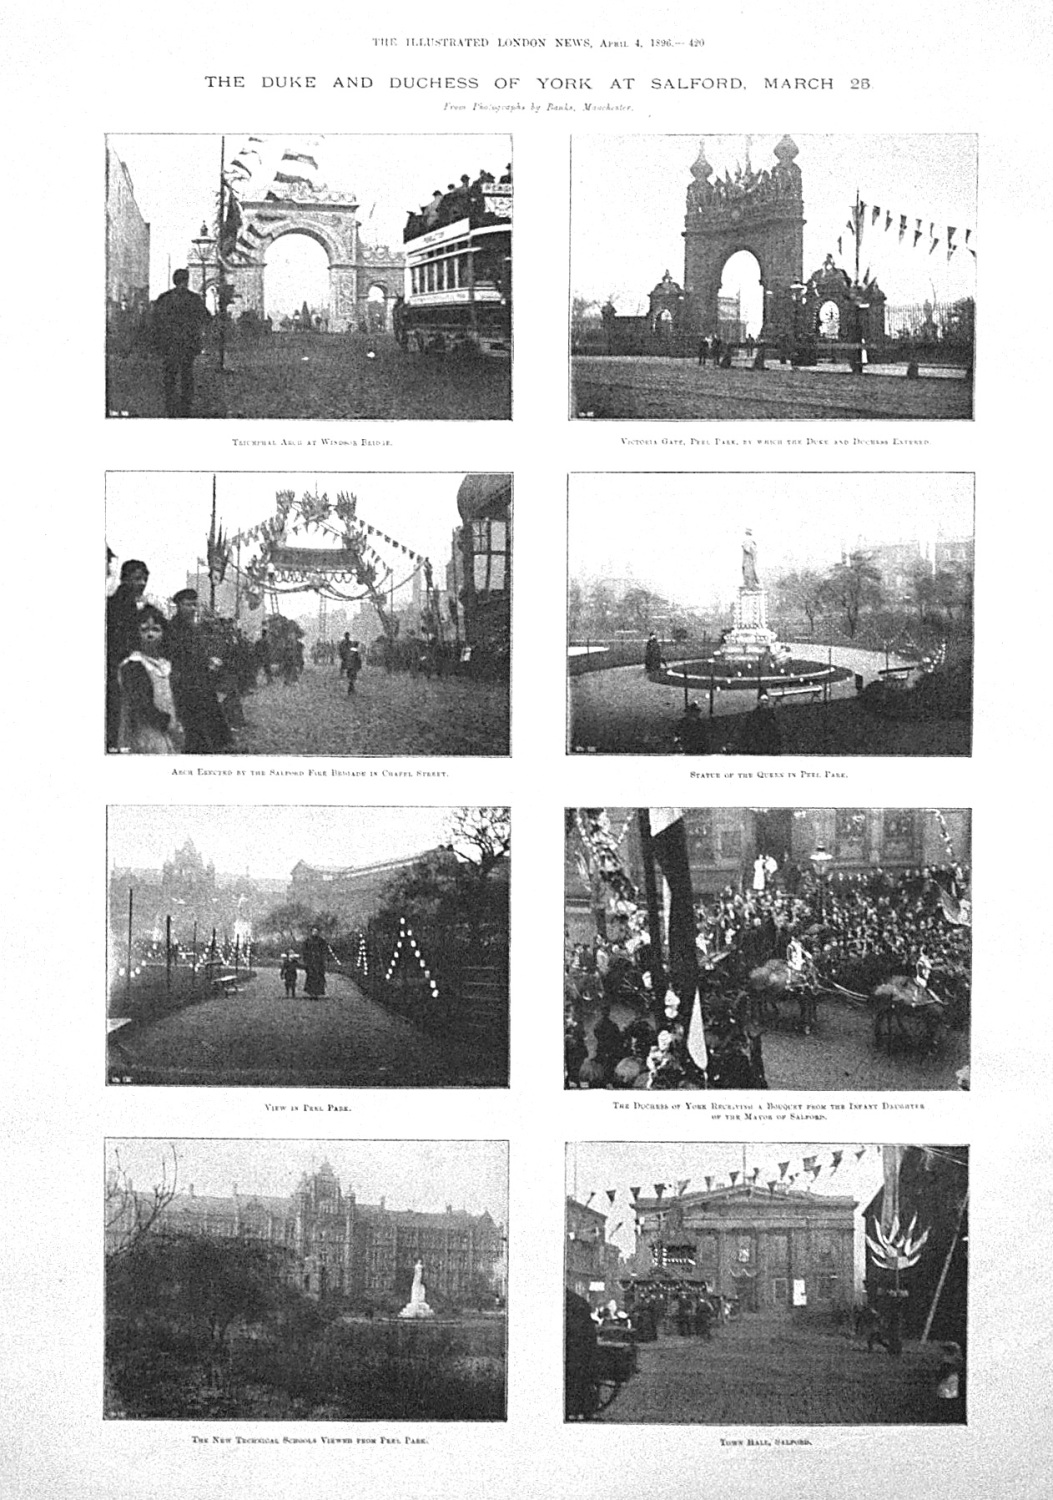 The Duke and Duchess of York at Salford, March 25th 1896